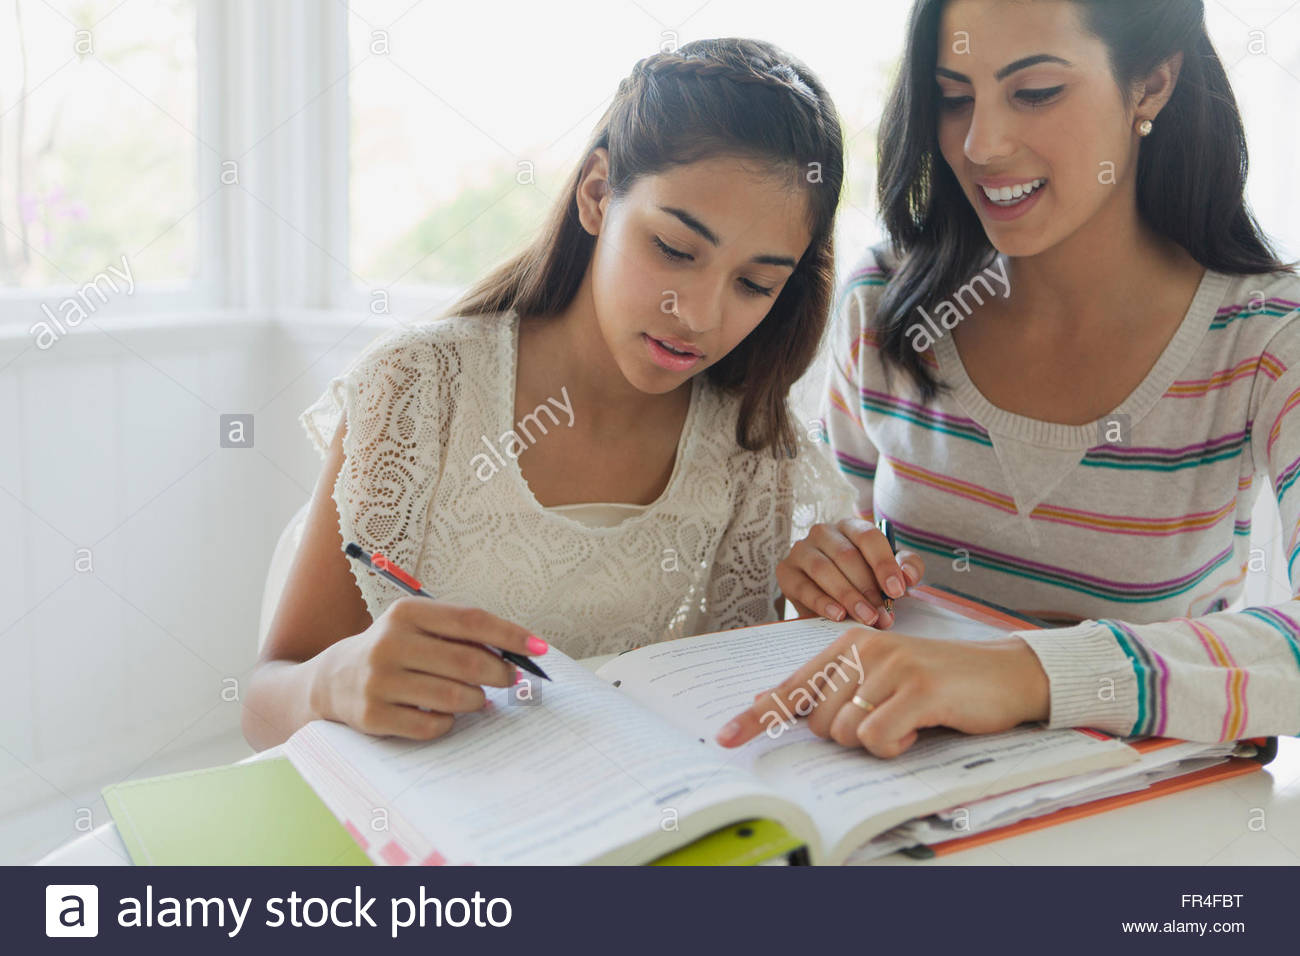 sister helping younger sister with homework - Stock Image